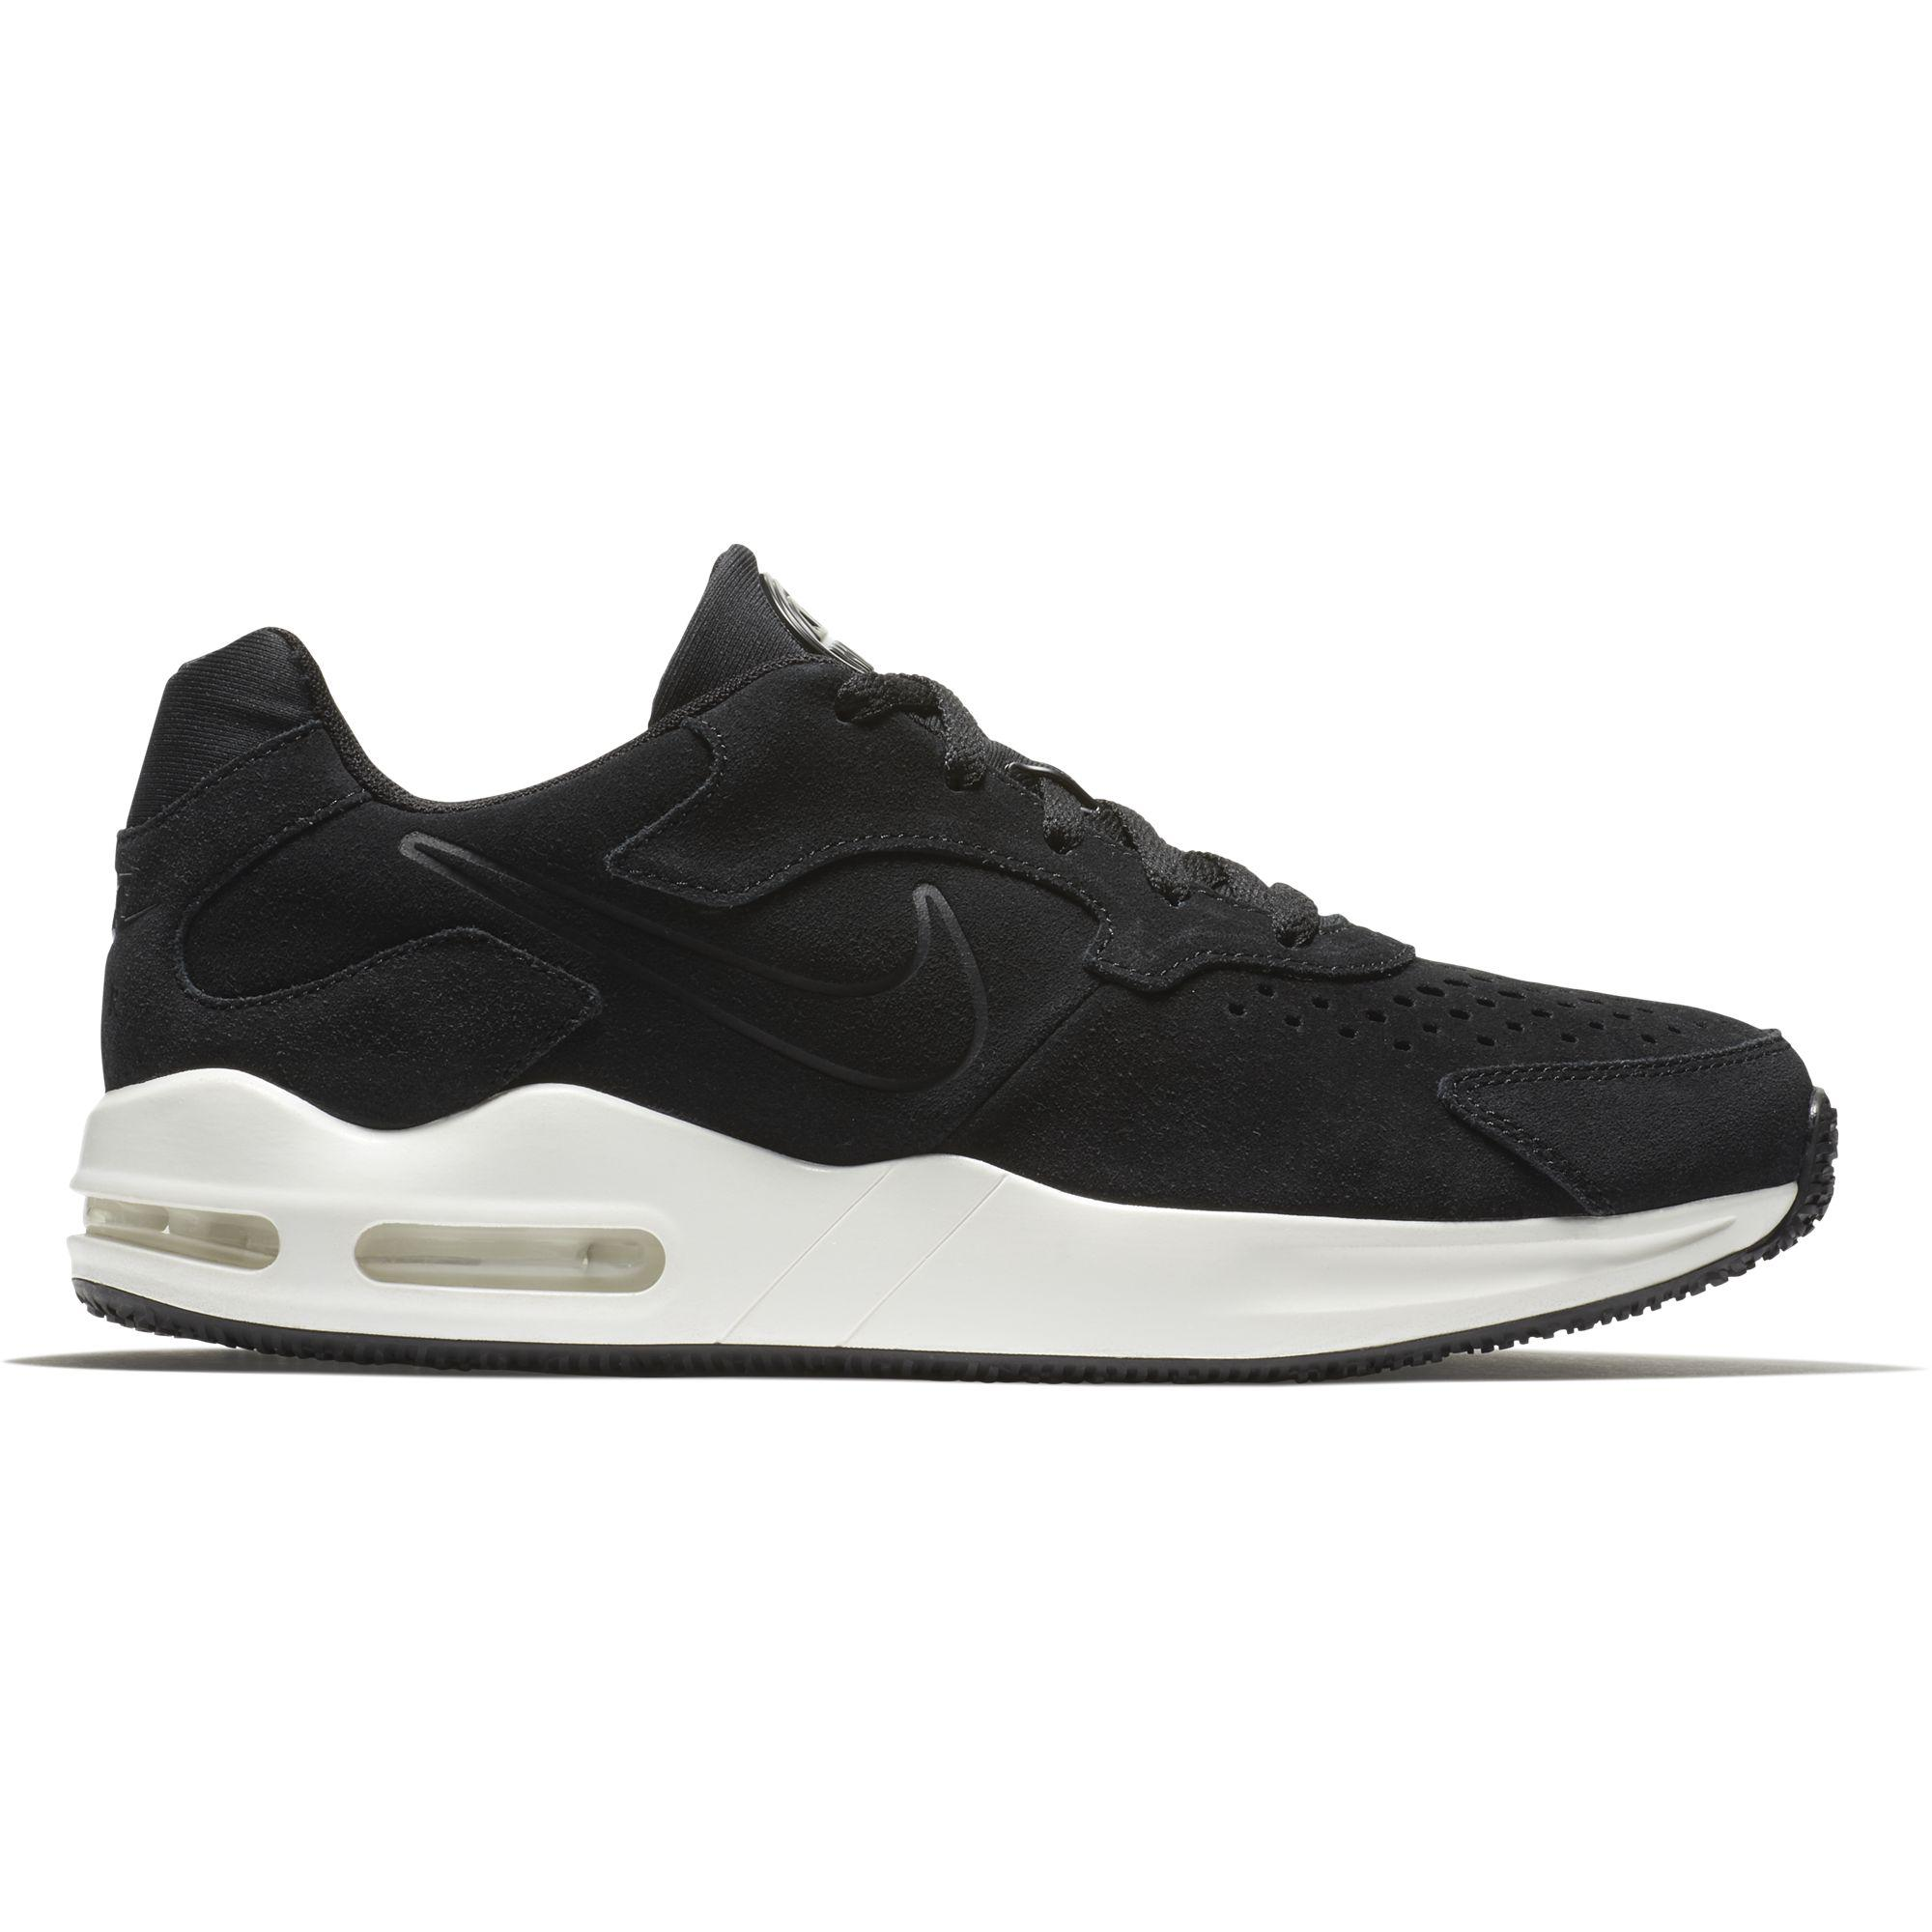 a4feaf7514e0 Nike Mens Air Max Guile Premium Running Shoes - Black Sail-Anthracite -  Tennisnuts.com